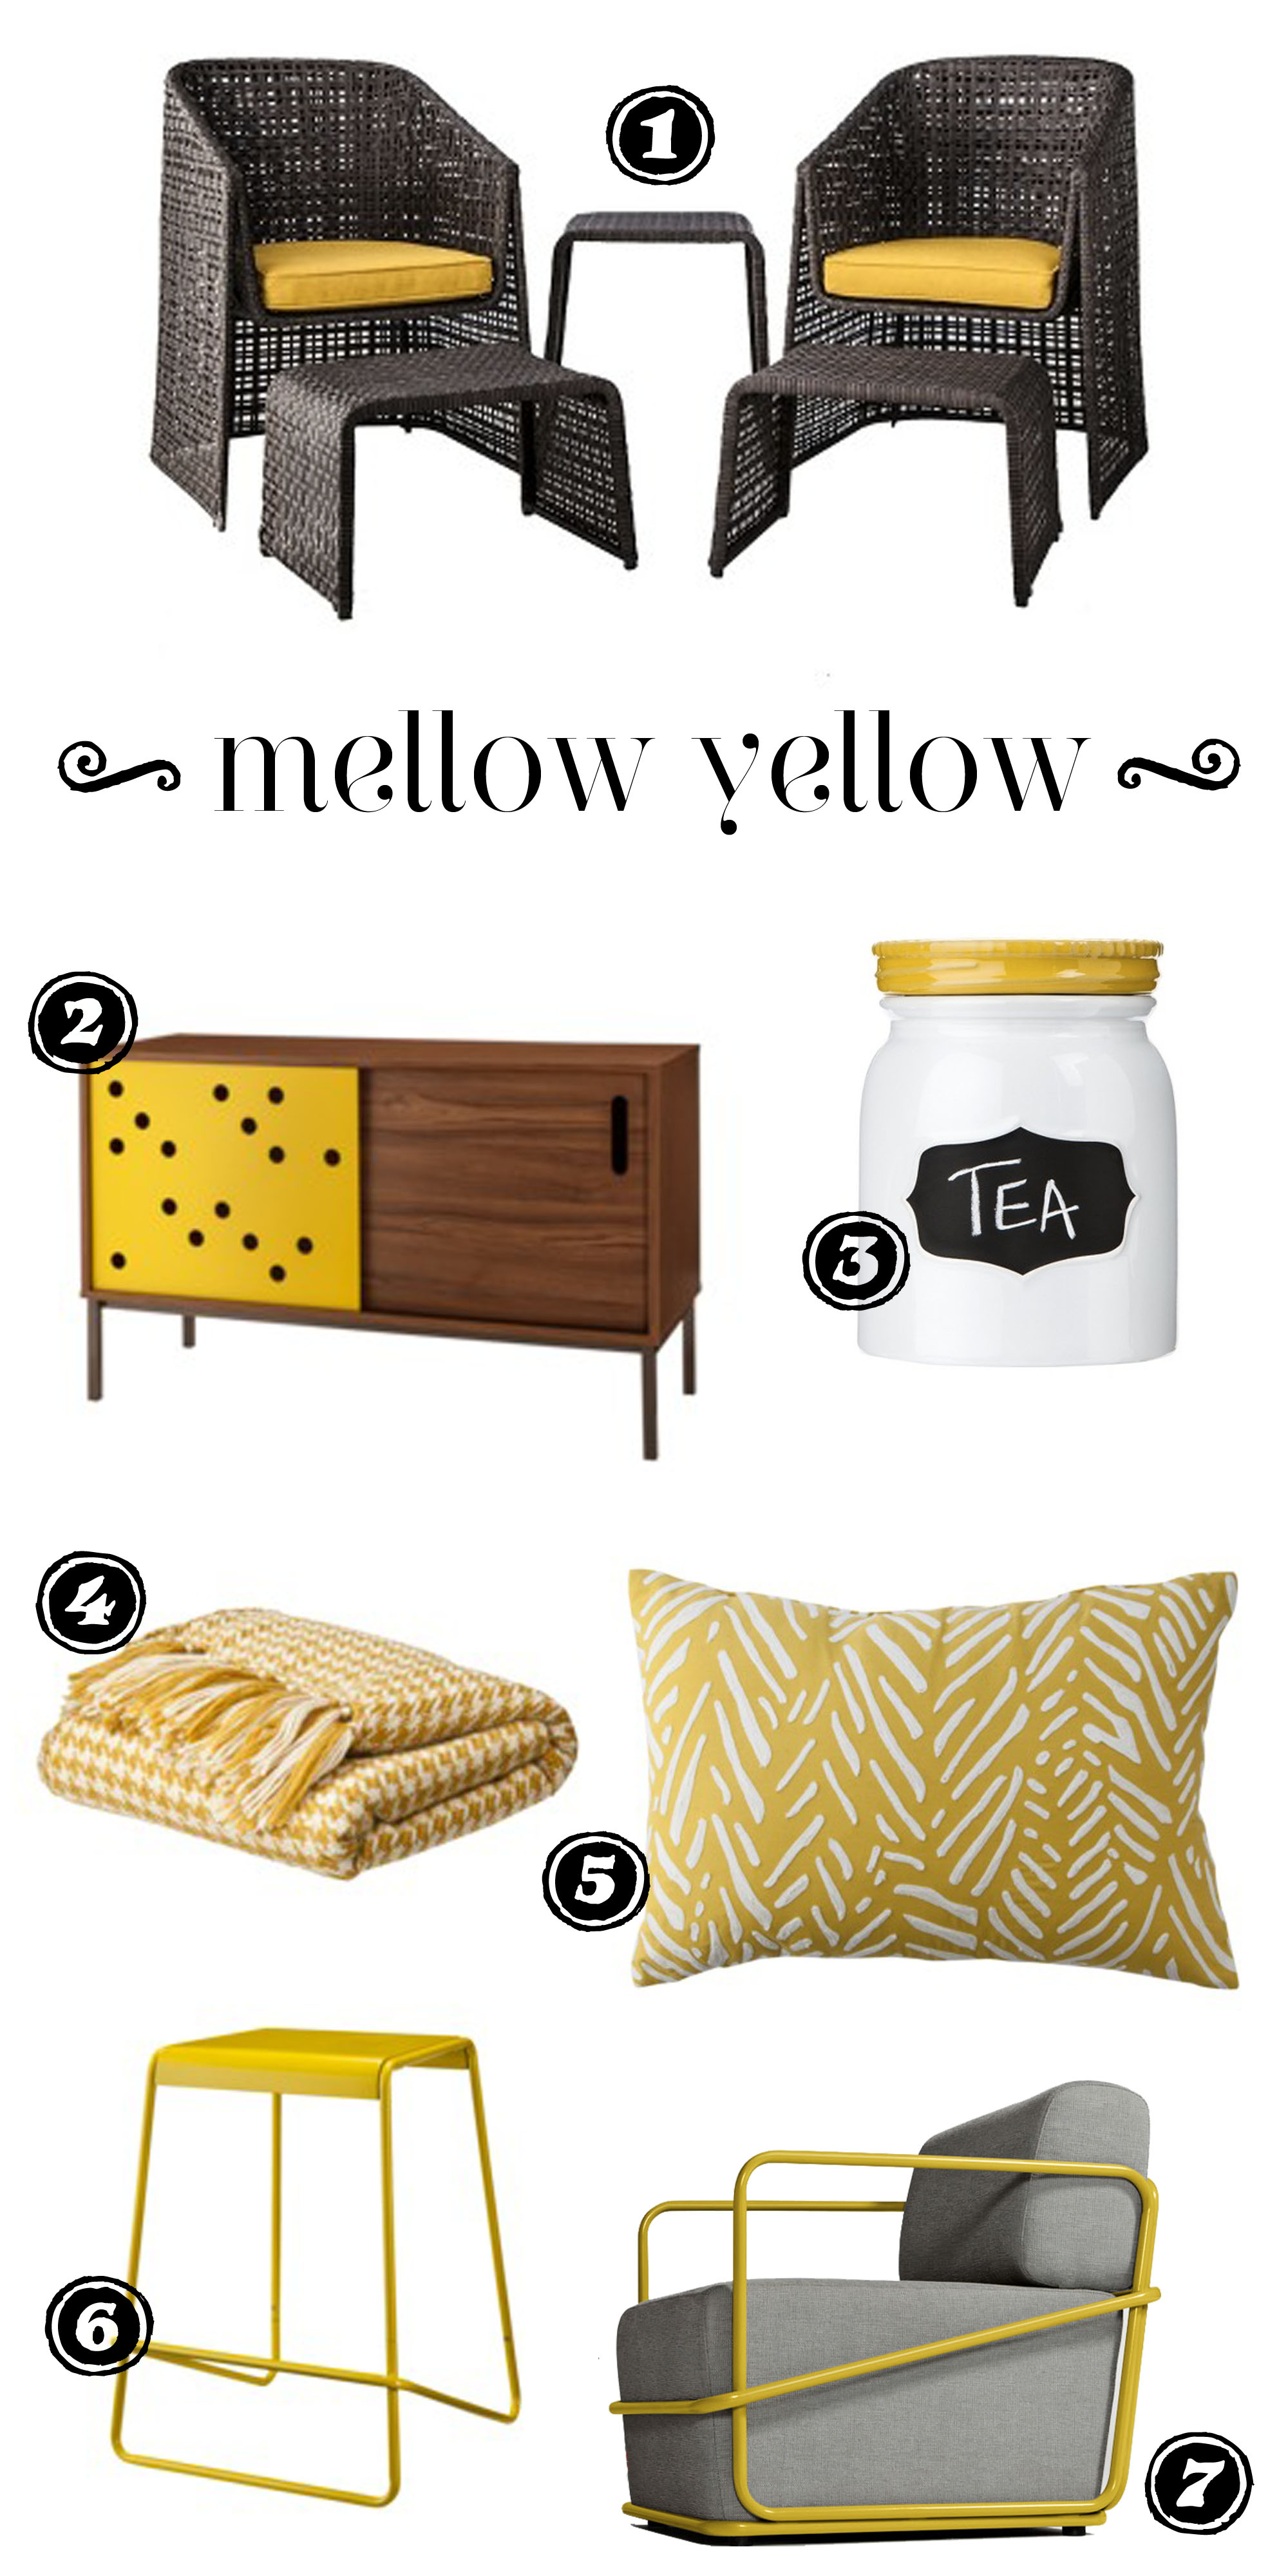 too by blu dot  rosemary on the tv - too by blu dot sideboard  threshold stoneware canister  thresholdhoundstooth throw  embroidered pillow  too by blu dot counter stool